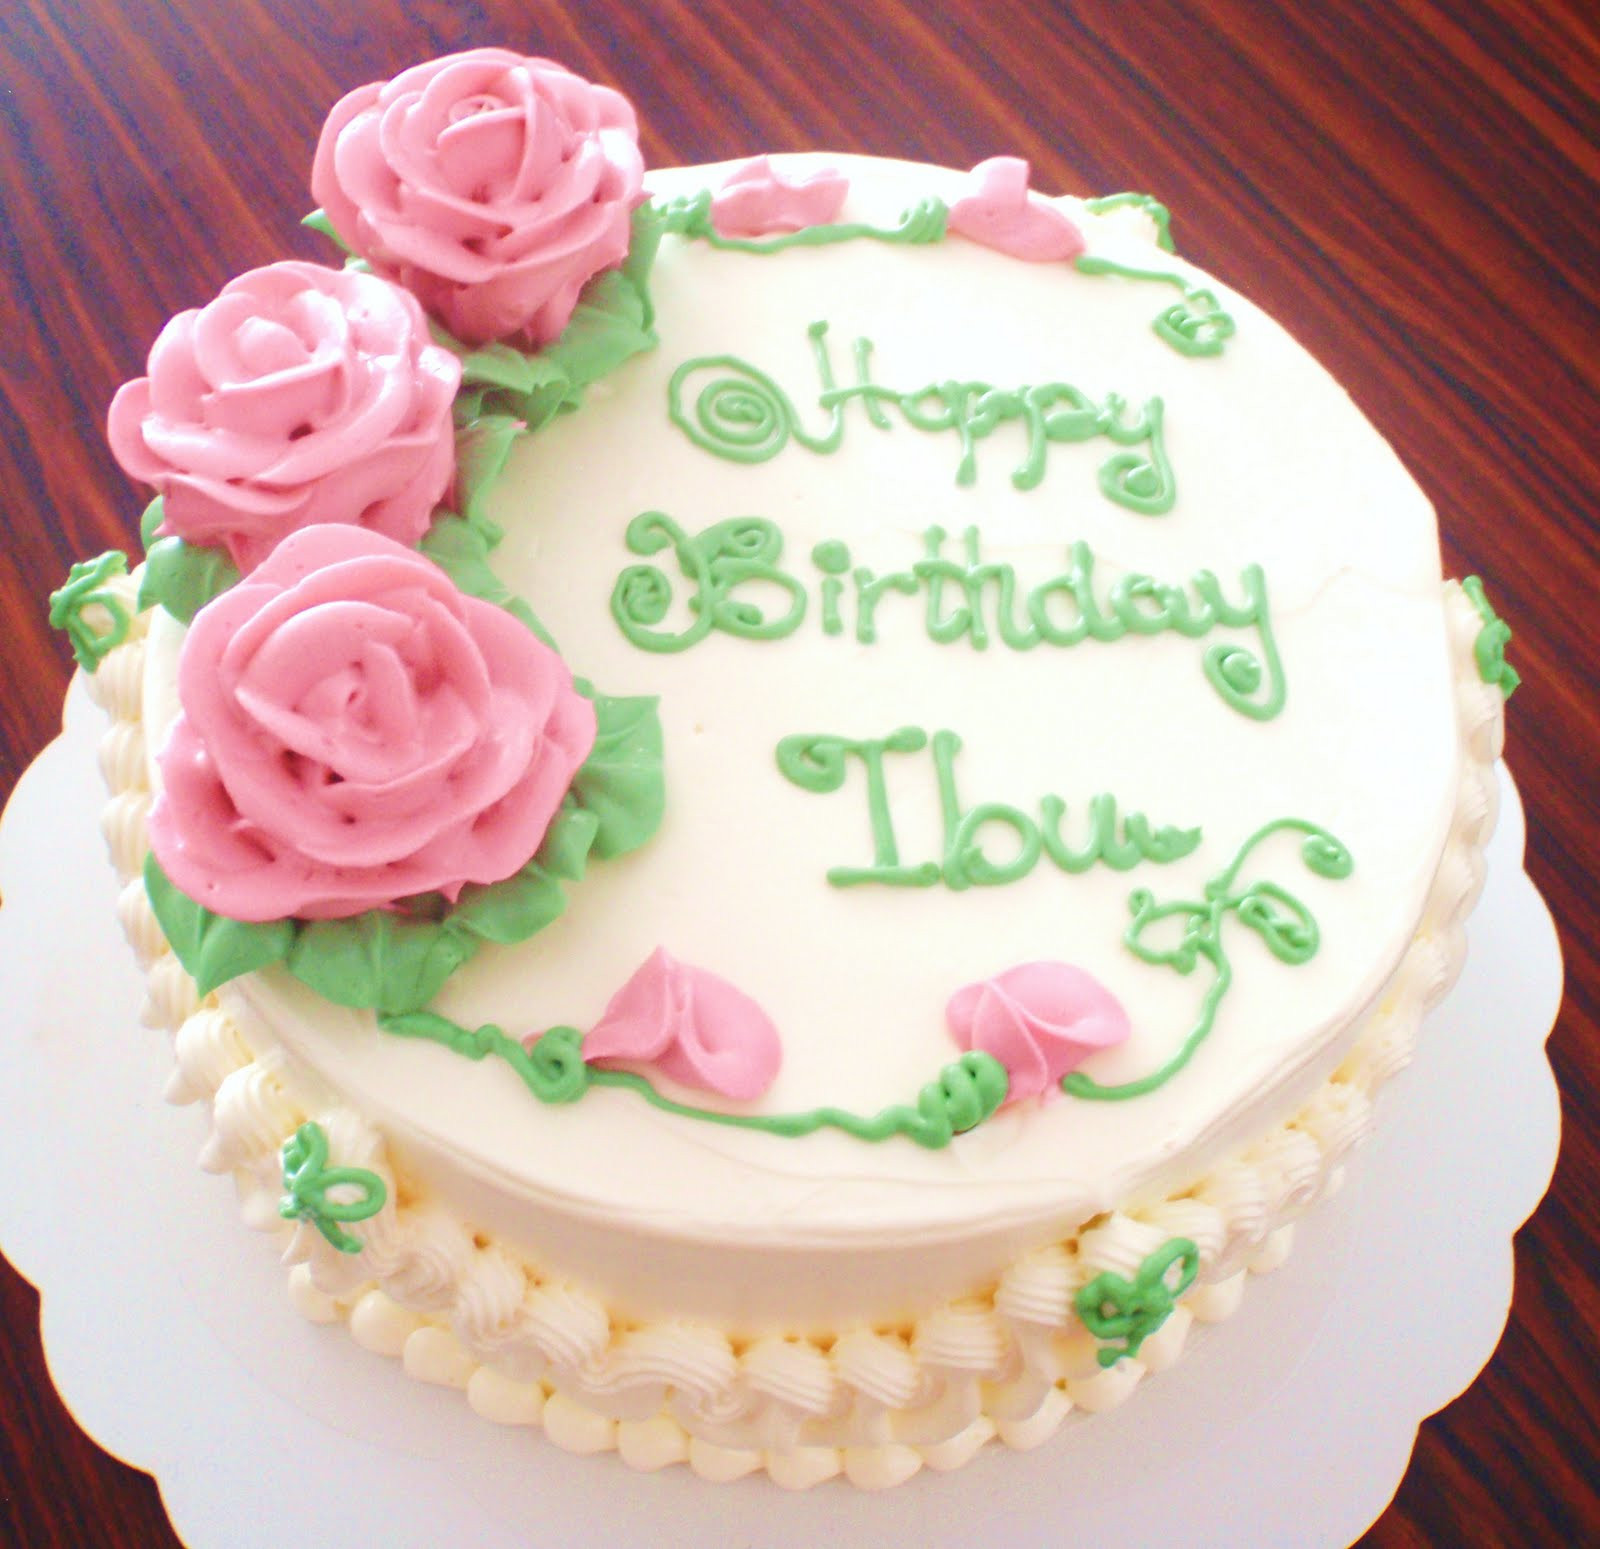 Best ideas about Birthday Cake For Mother . Save or Pin By Jalia Mother s Day & Birthday Cake for Ibu Now.